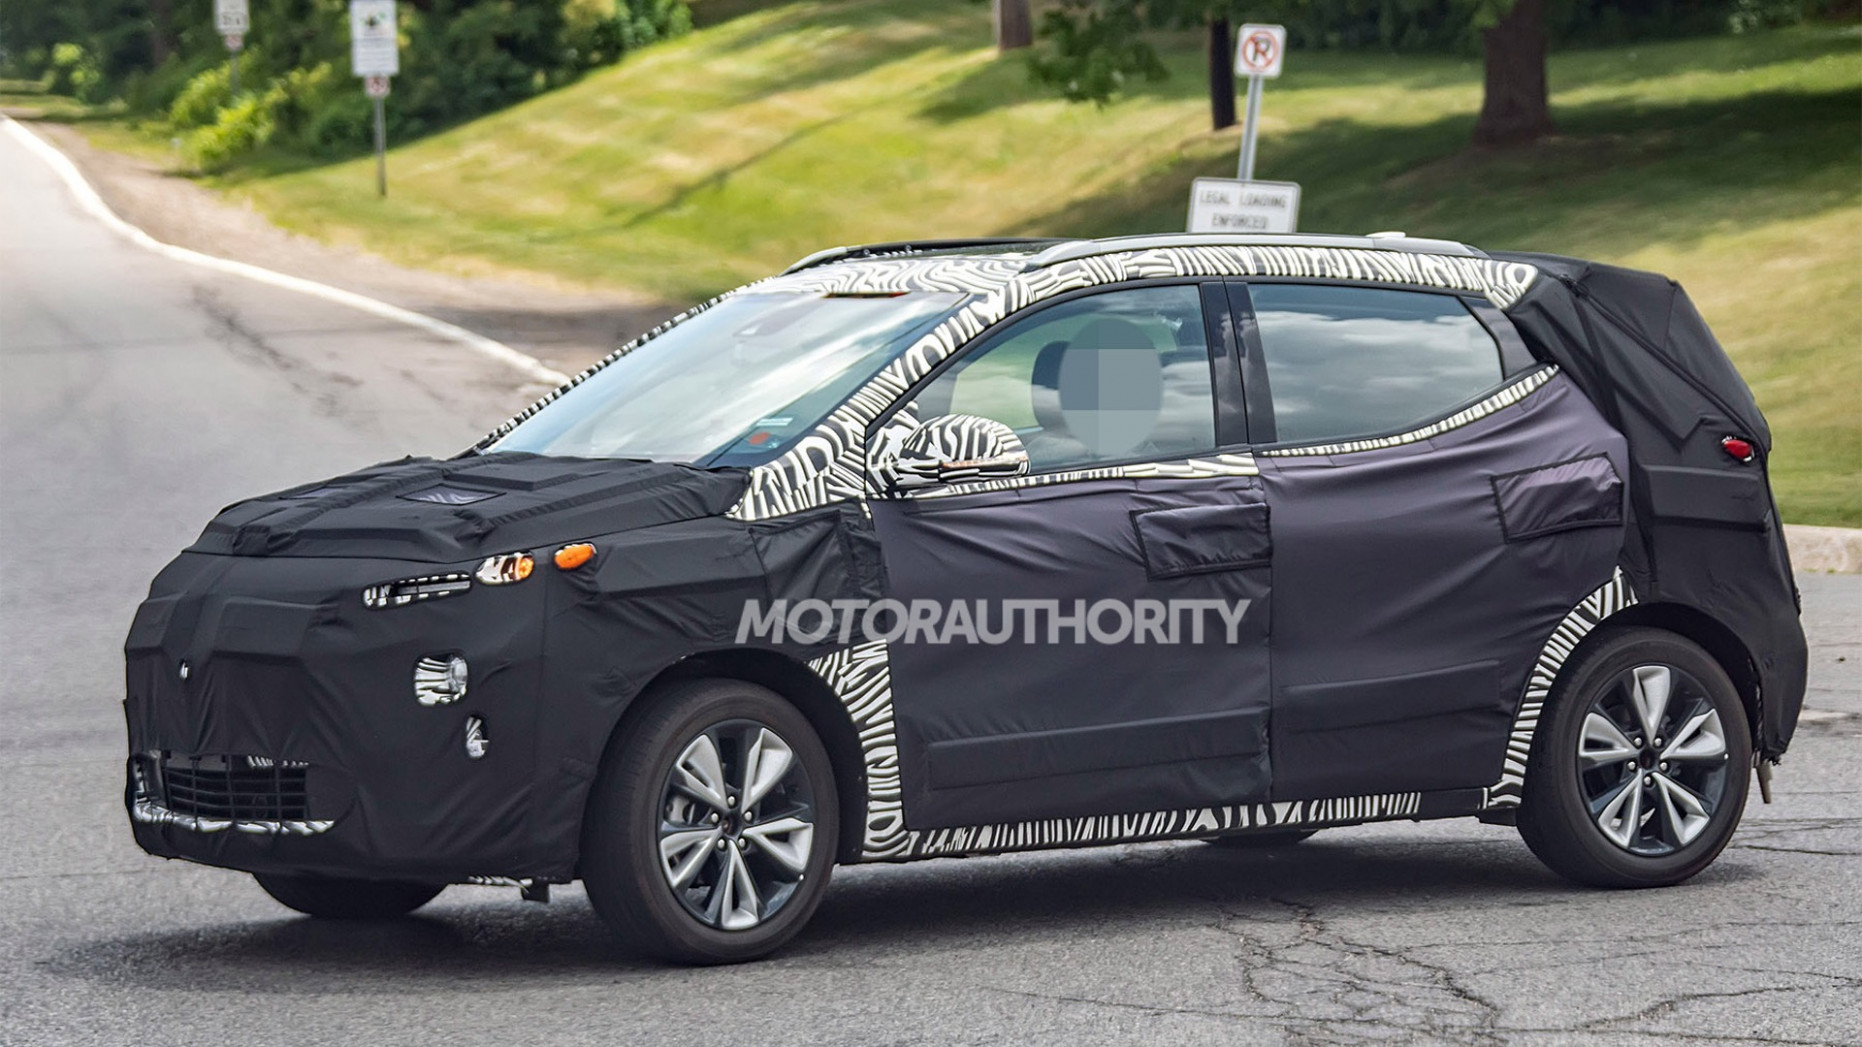 Performance and New Engine 2022 Chevy Bolt